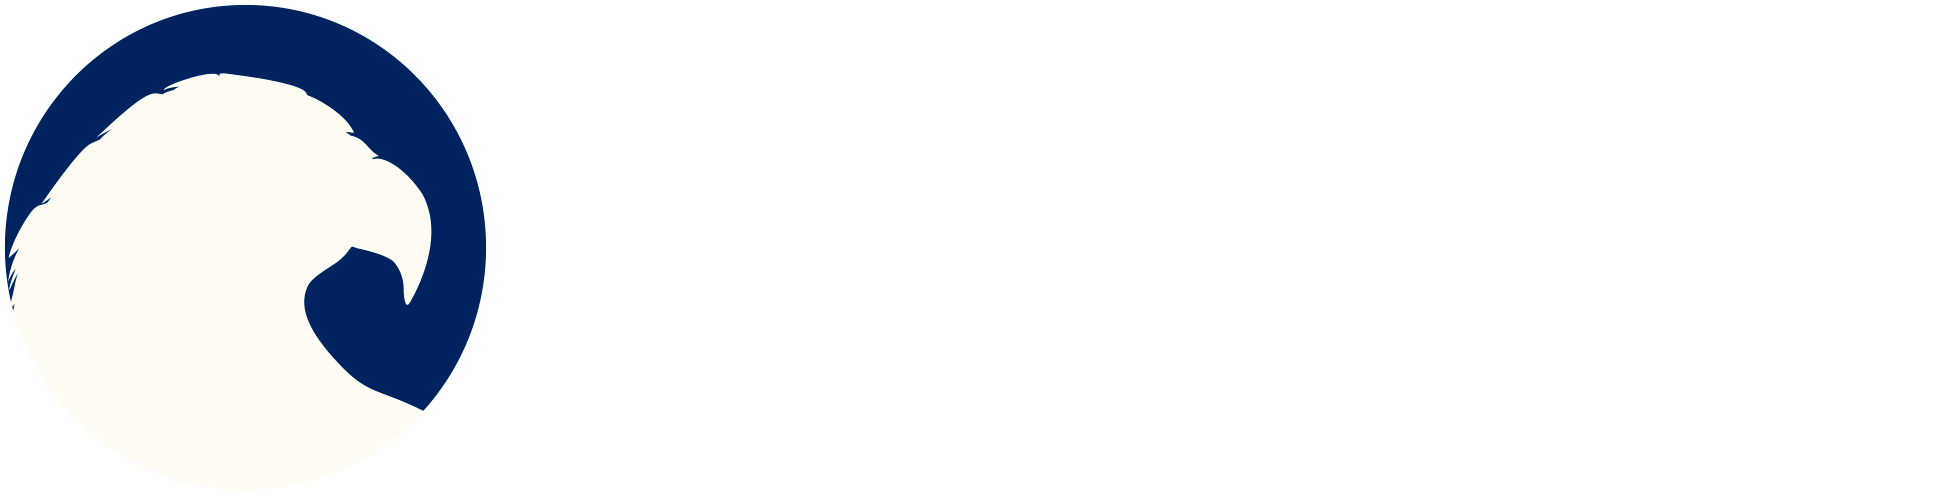 Mendocino College Foundation